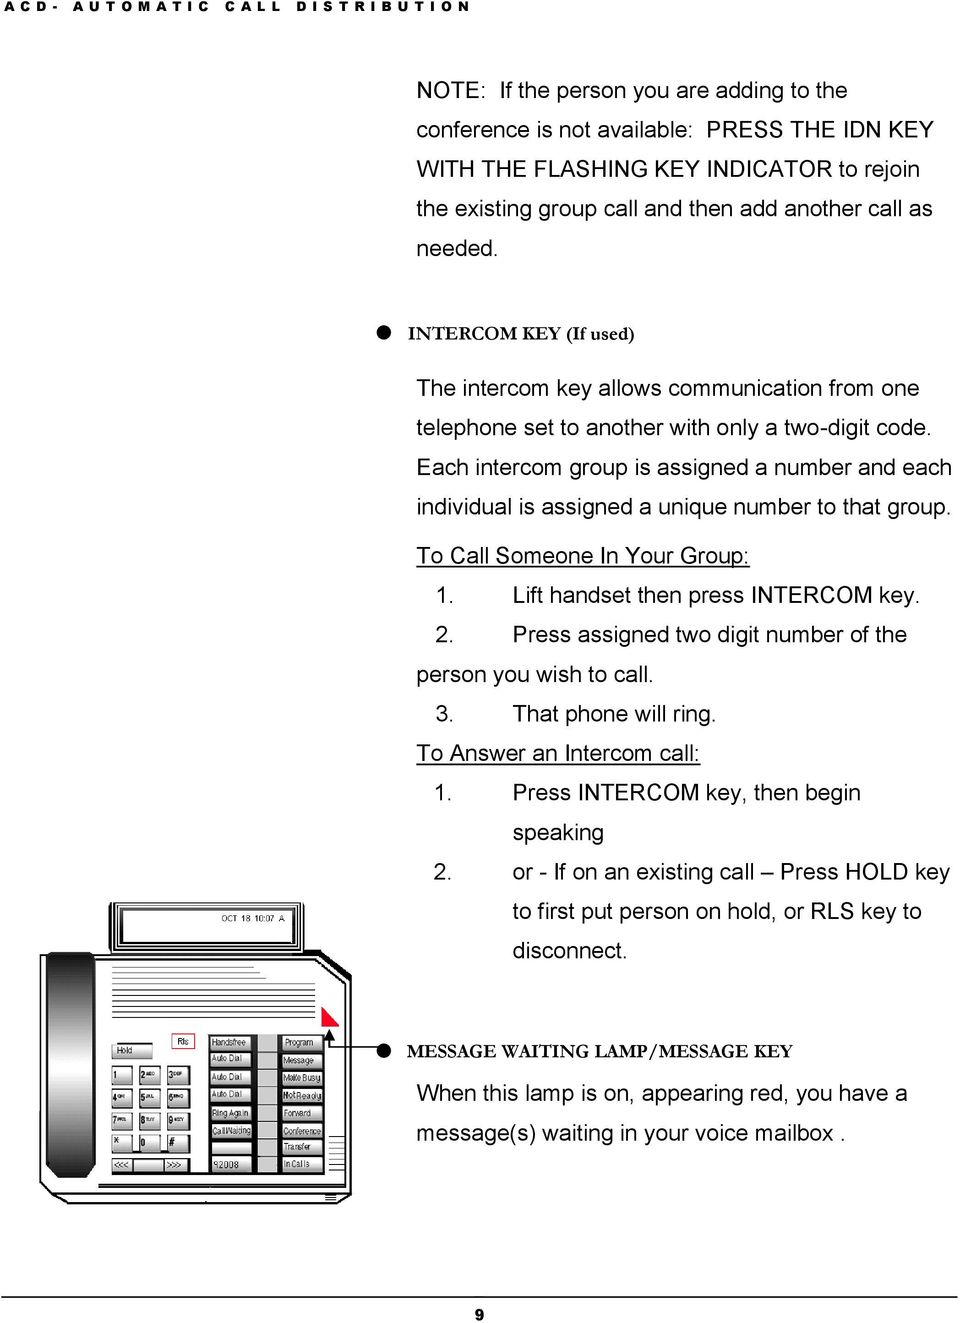 Each intercom group is assigned a number and each individual is assigned a unique number to that group. To Call Someone In Your Group: 1. Lift handset then press INTERCOM key. 2.